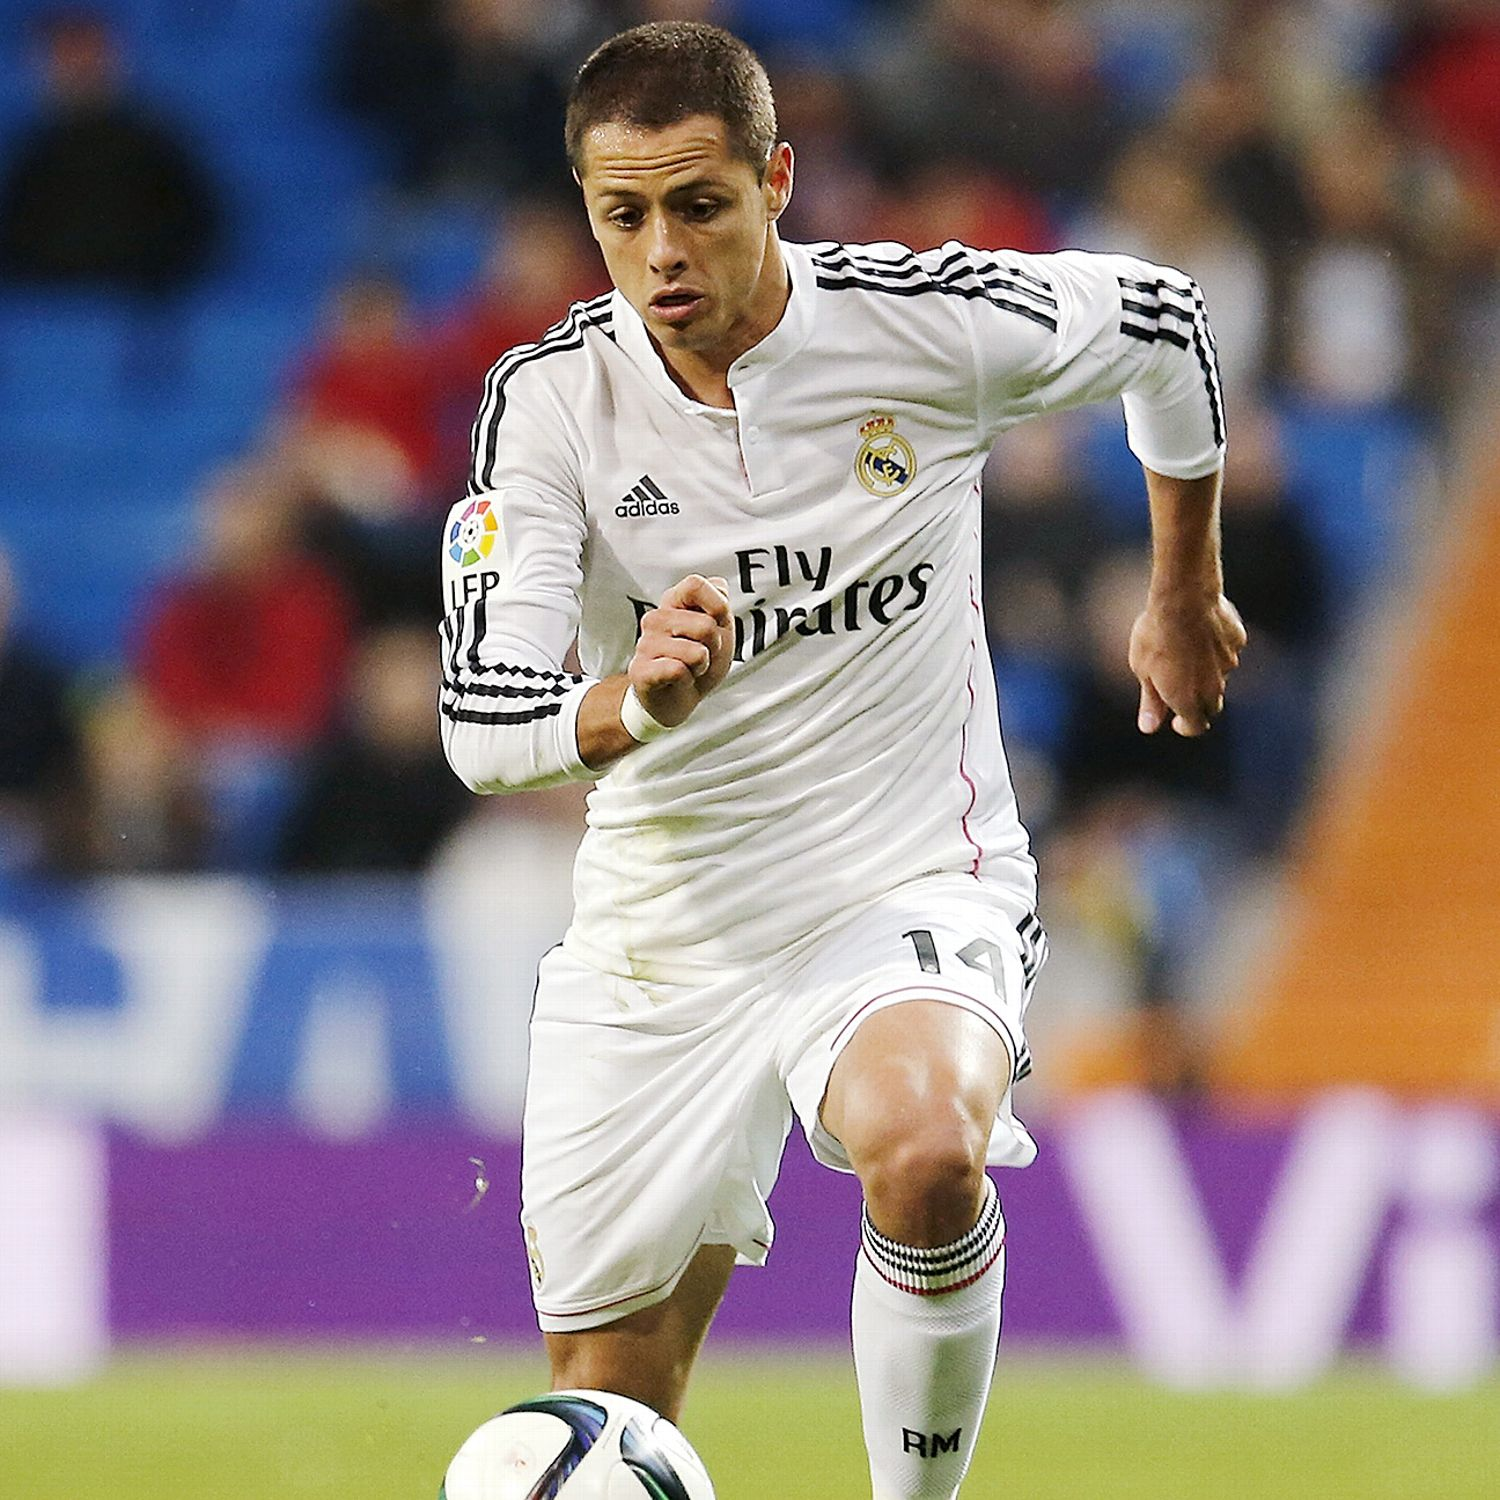 Il Chicharito Hernandez decide a favore del Real il derby spagnolo di Champions League con l'Atletico